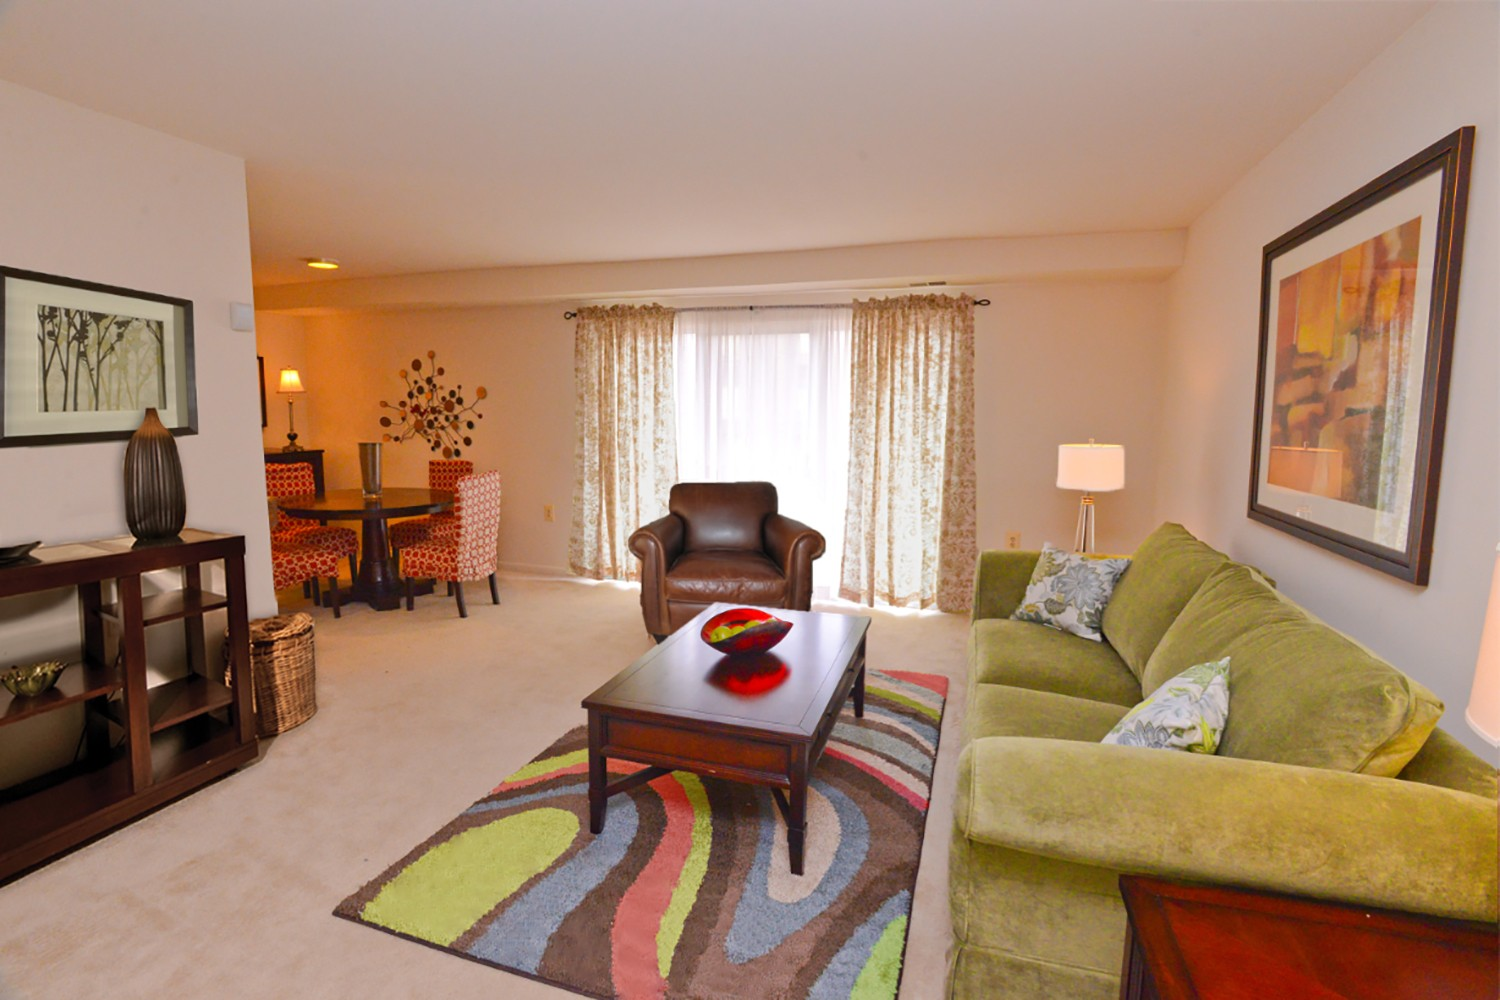 catonsville, md apartments for rent in baltimore county   white